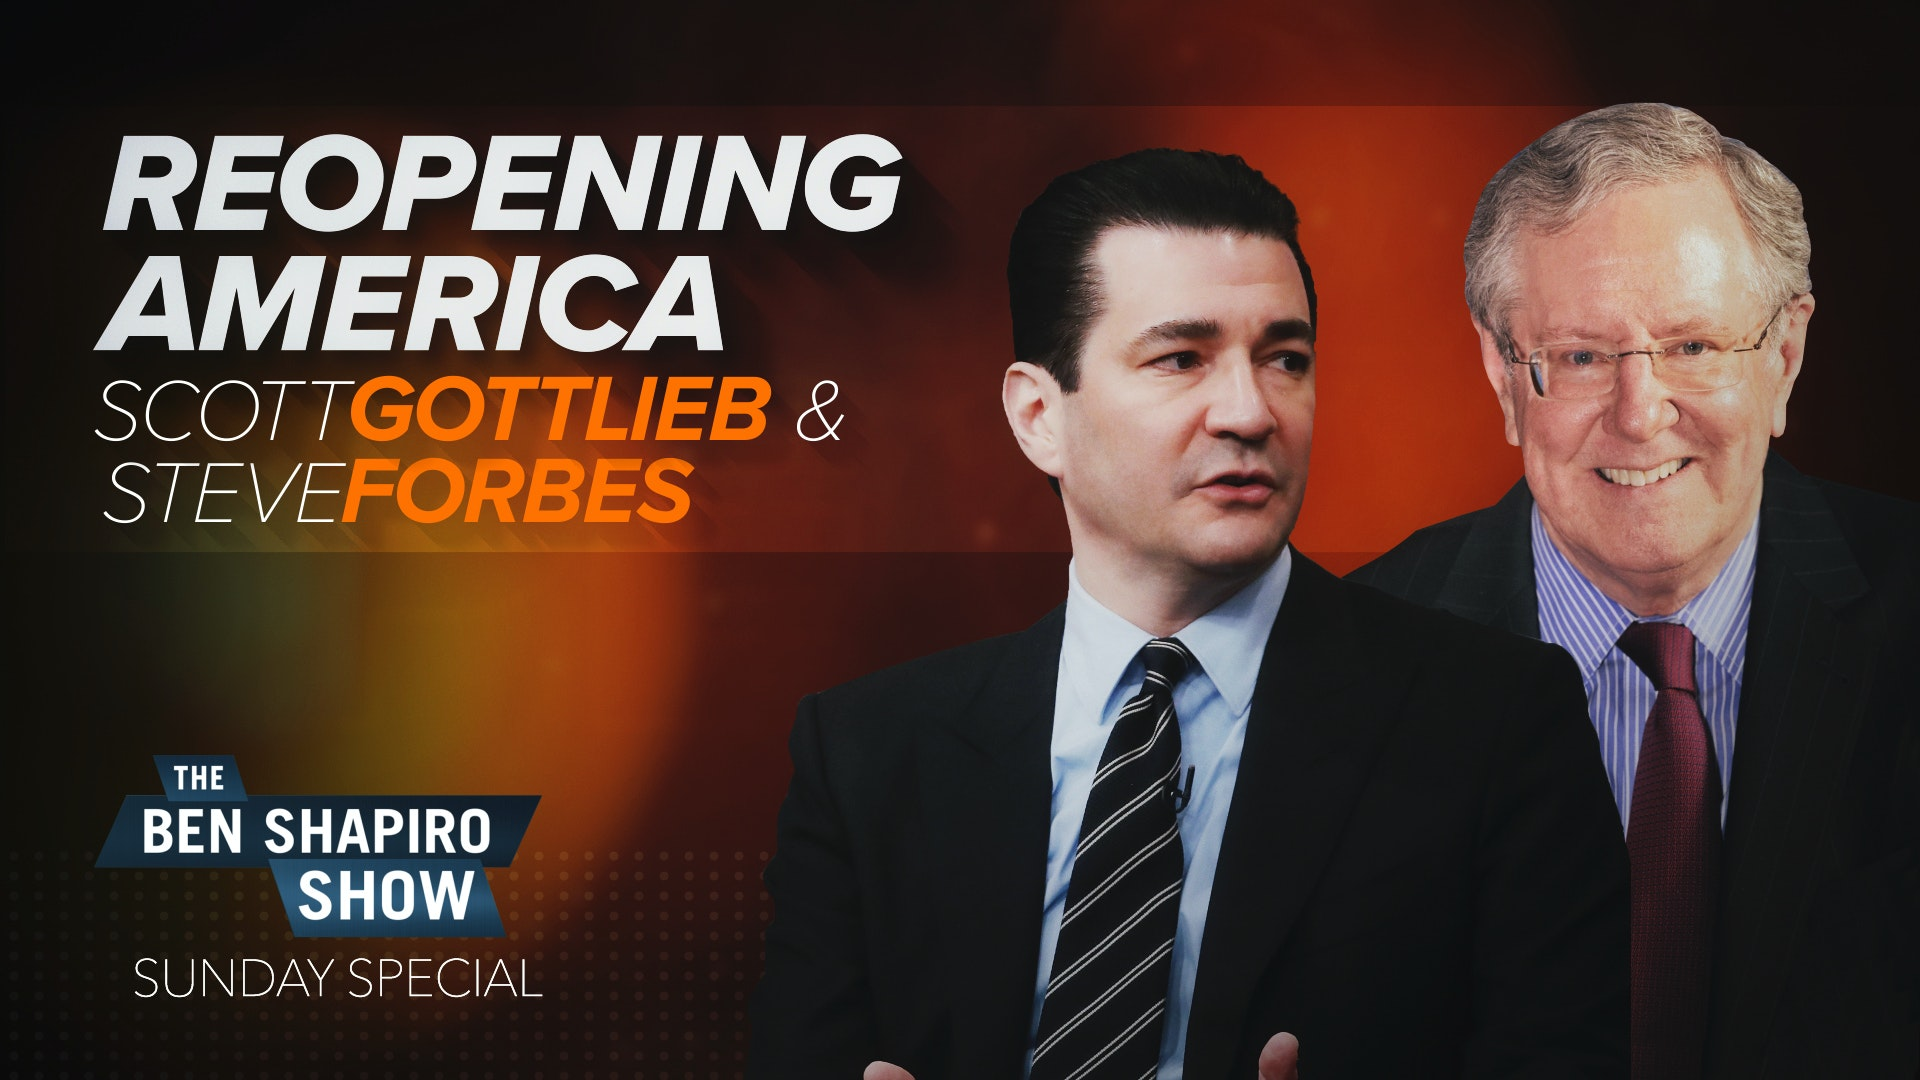 Ep. 91 - How to Reopen the Country: With Scott Gottlieb and Steve Forbes